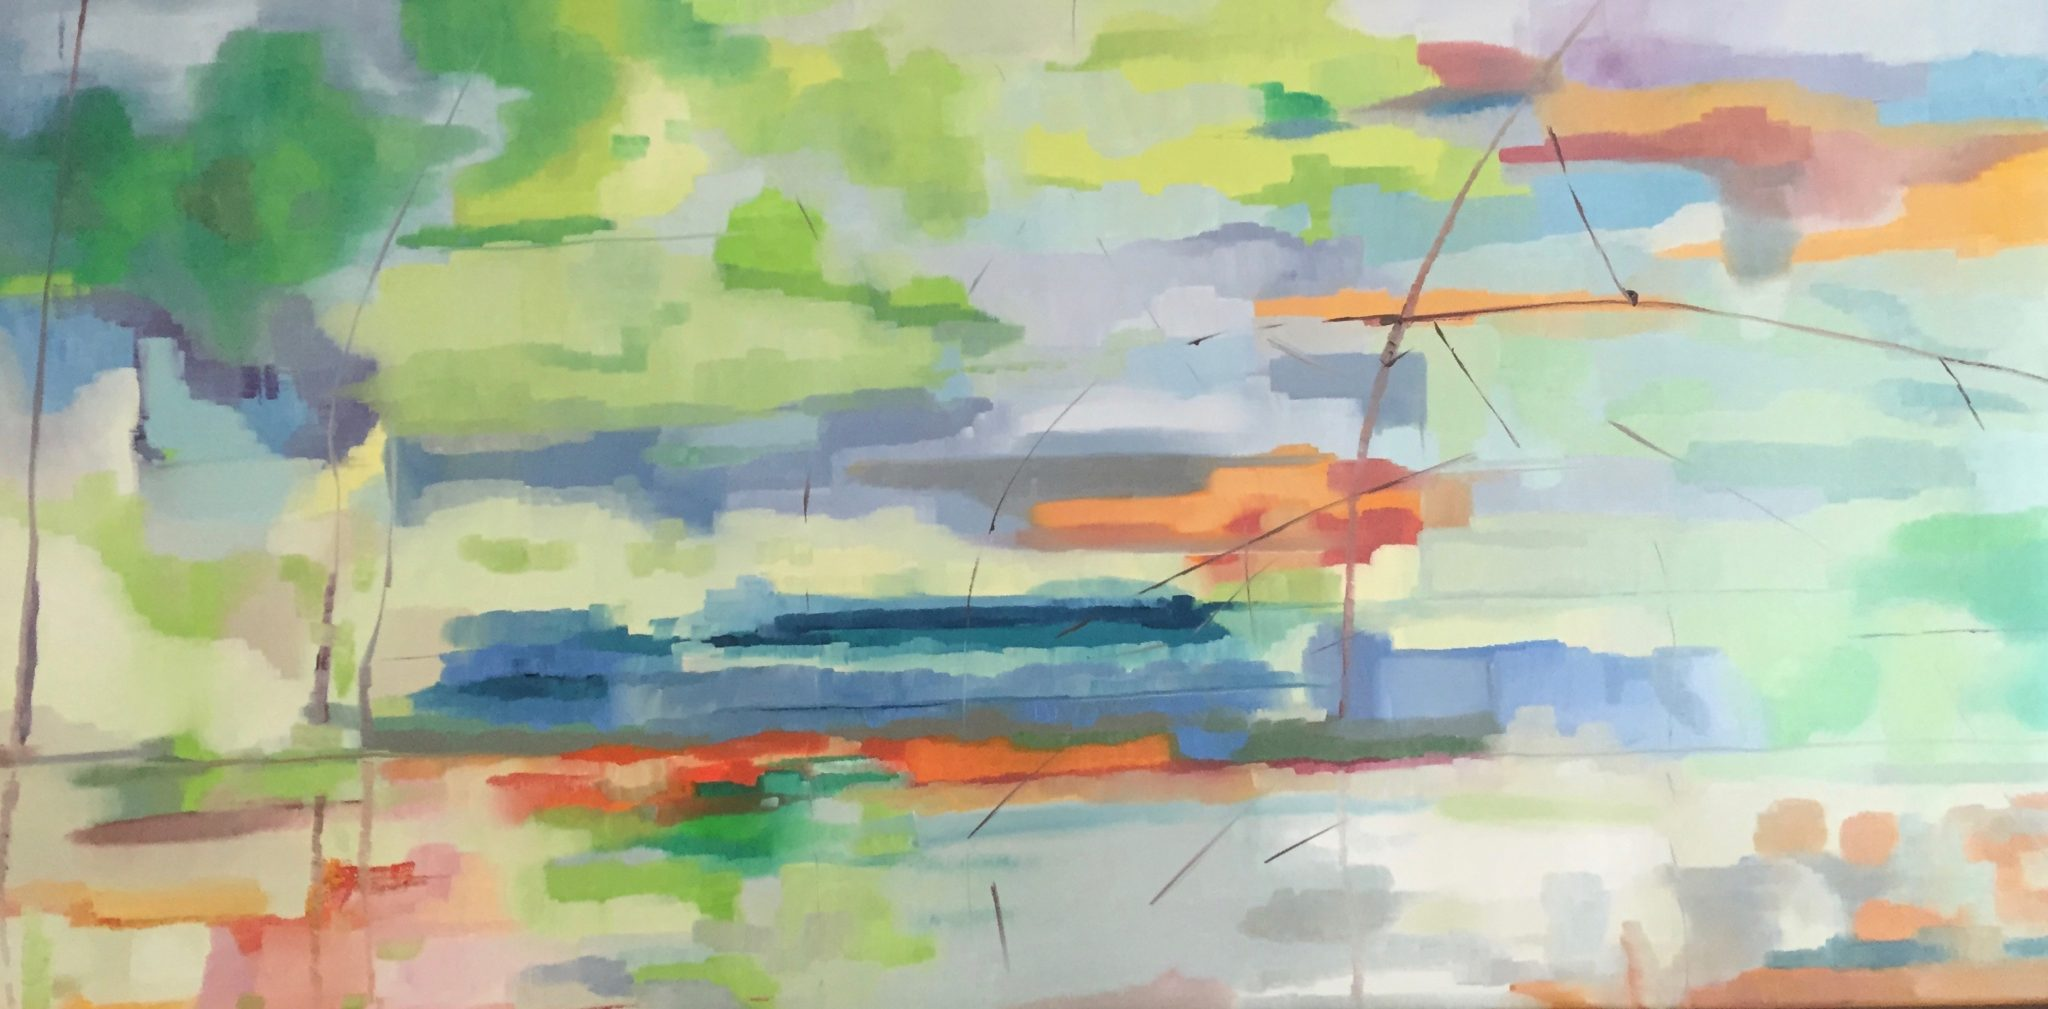 Reflections 2: Reflections on the river Loup, 120cm x 60cm